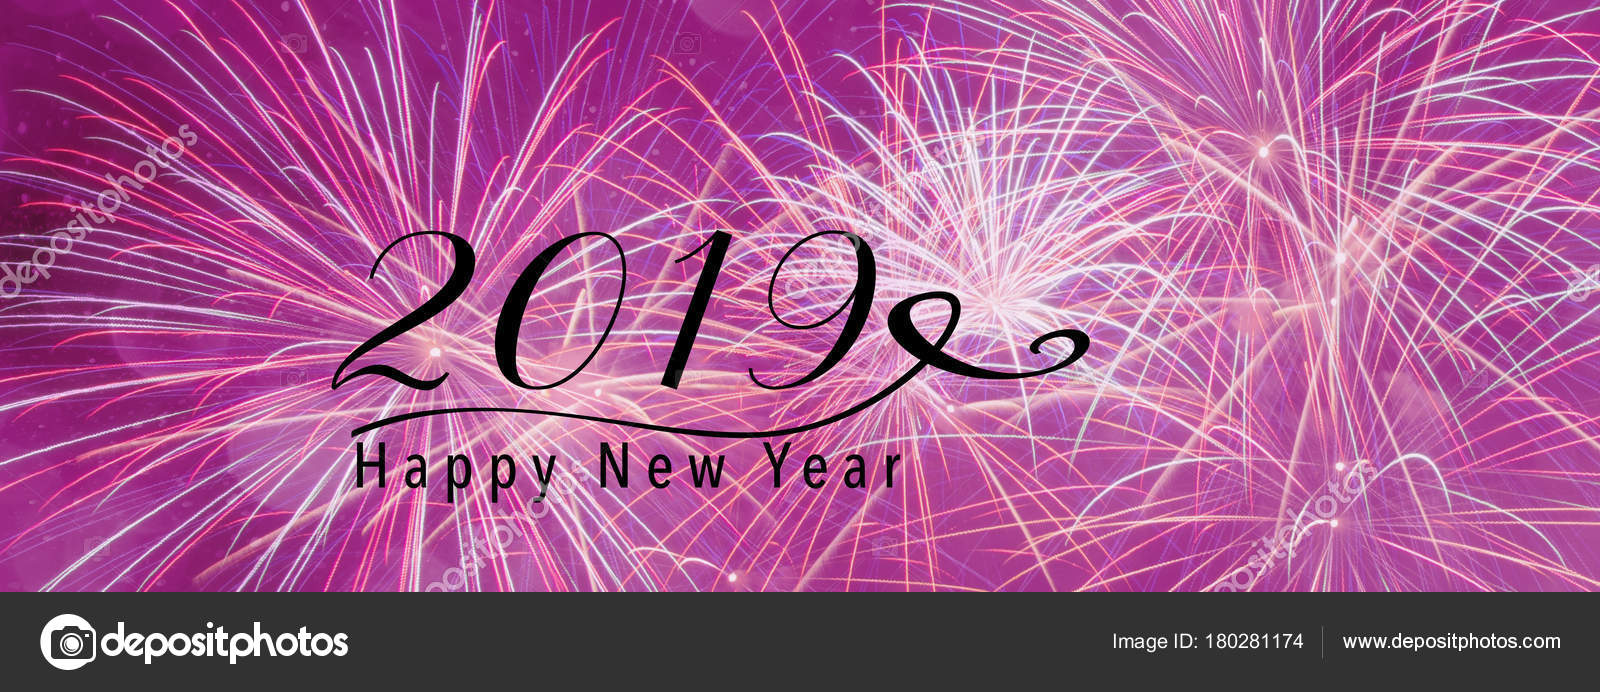 happy new year 2019 quote panoramic banner style scales down to fit a facebook header size photo by capdesign